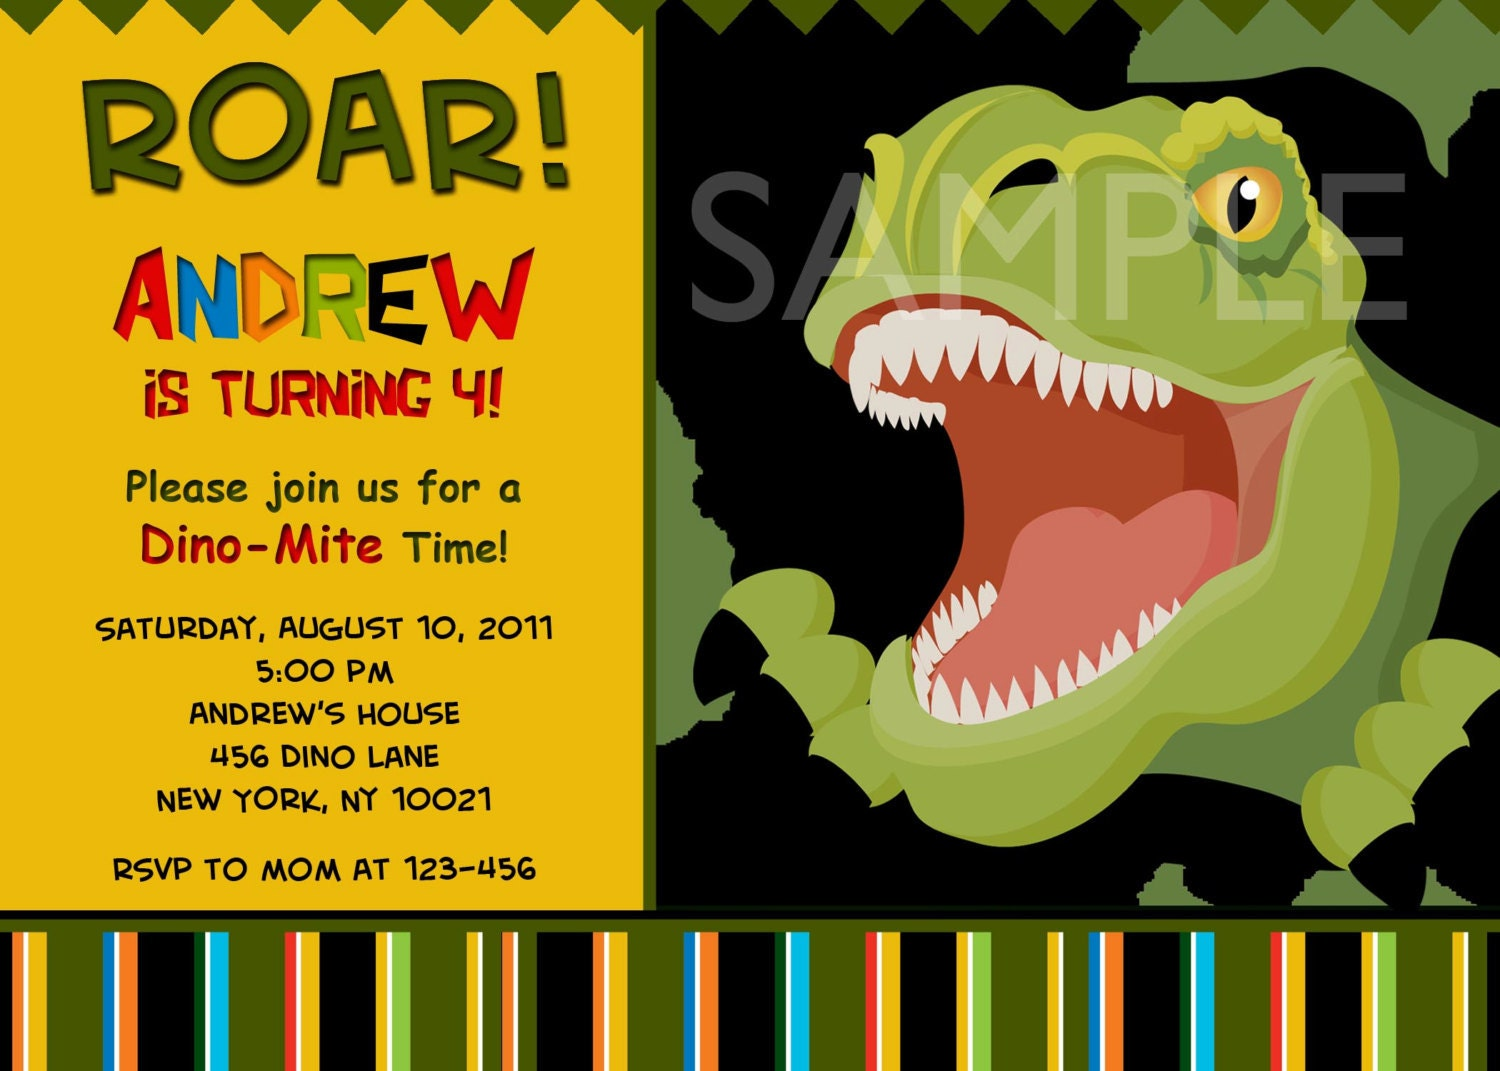 Dinosaur Invitation Template as amazing invitation template